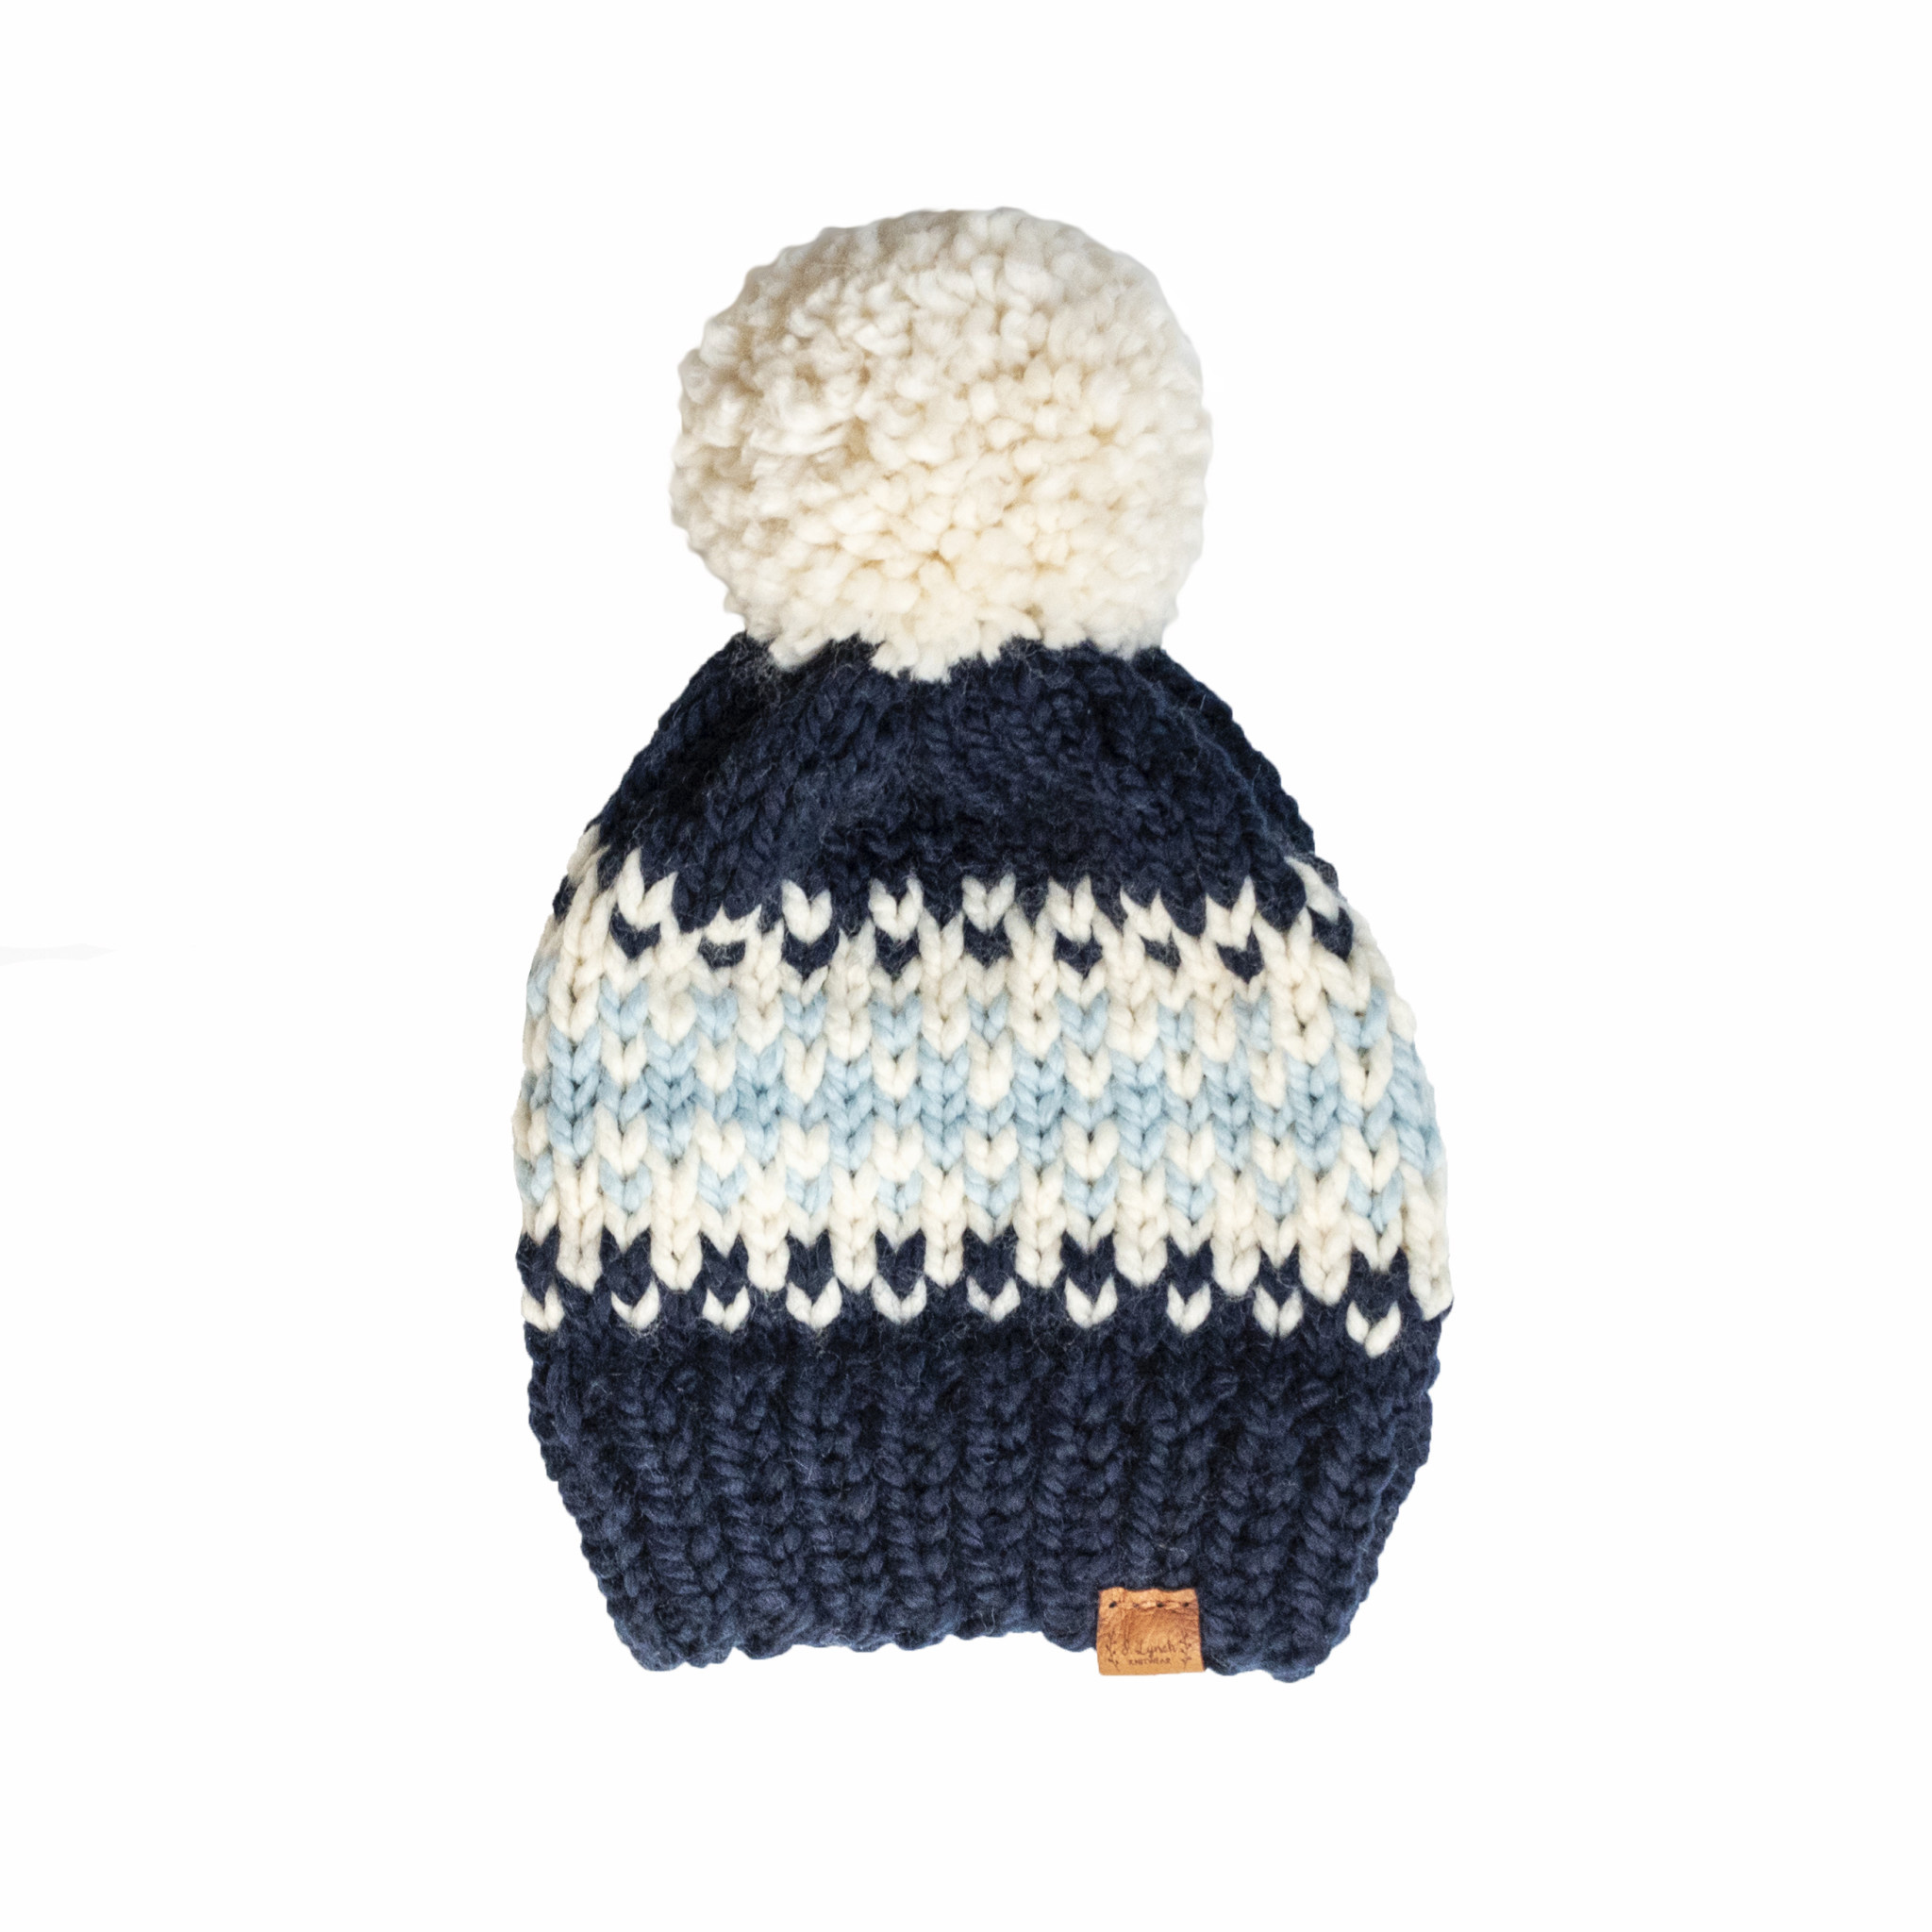 S. Lynch Knitwear Adult Hat - Daytrip Custom Navy Light Blue